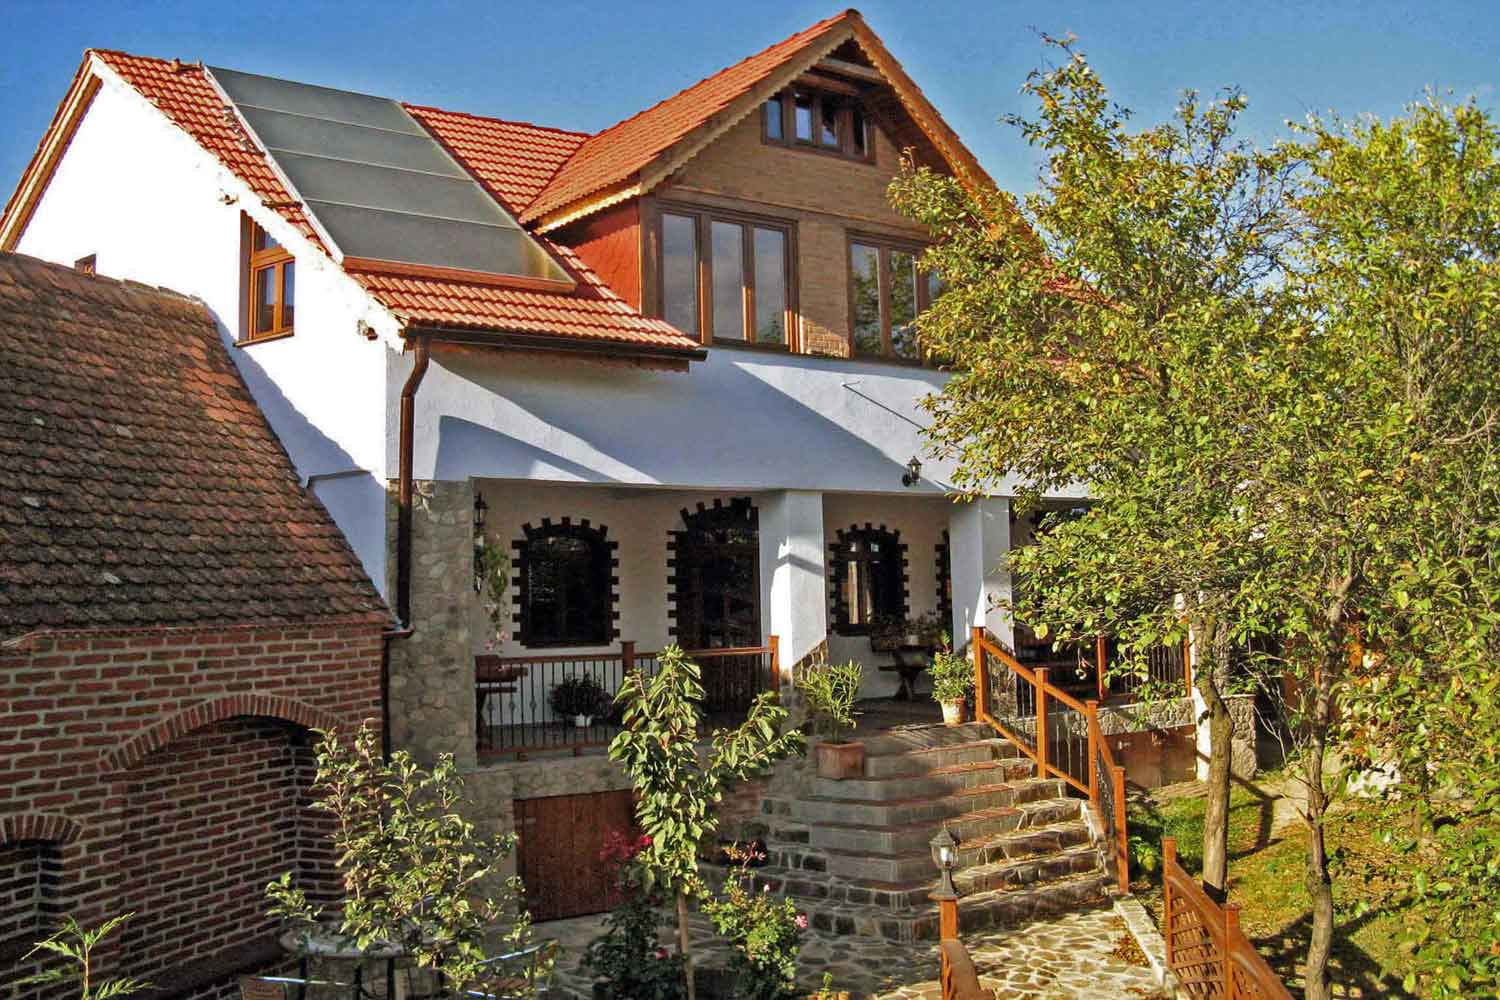 self catering transylvania villa romania family holidays